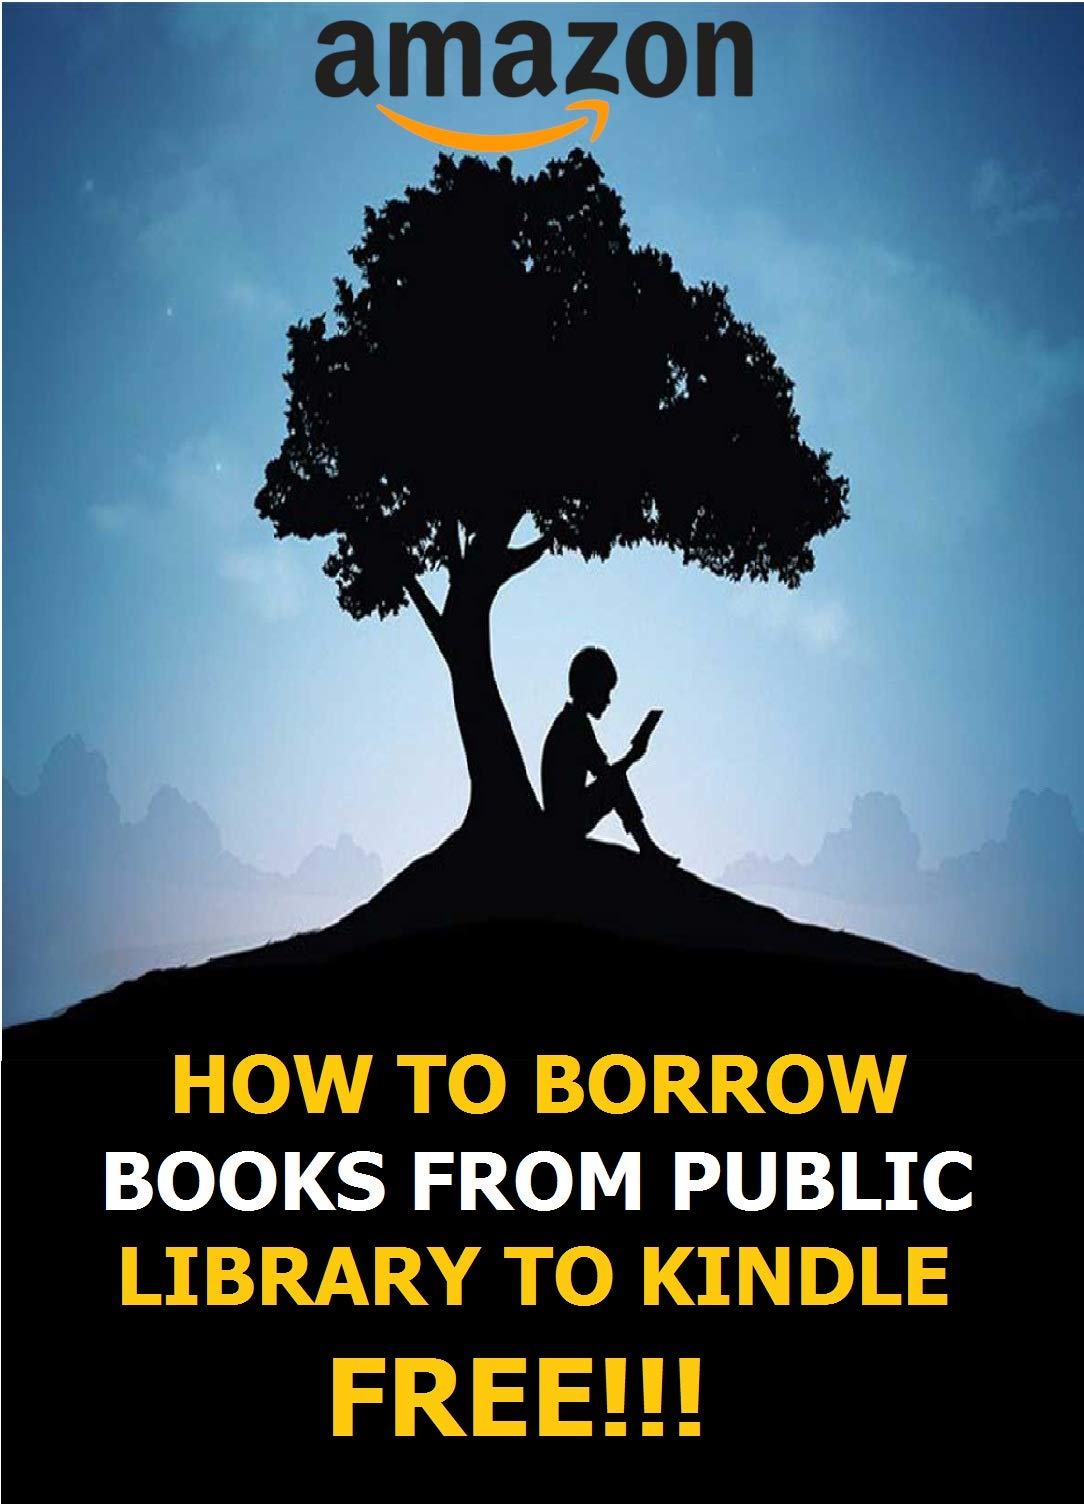 How To Borrow Books From Public Library On Kindle For Free: Simplest Method On How To Borrow Books On Kindle With Overdrive To Kindle App, Fire Tablet, or Kindle E-reader - WITH SCREENSHOTS